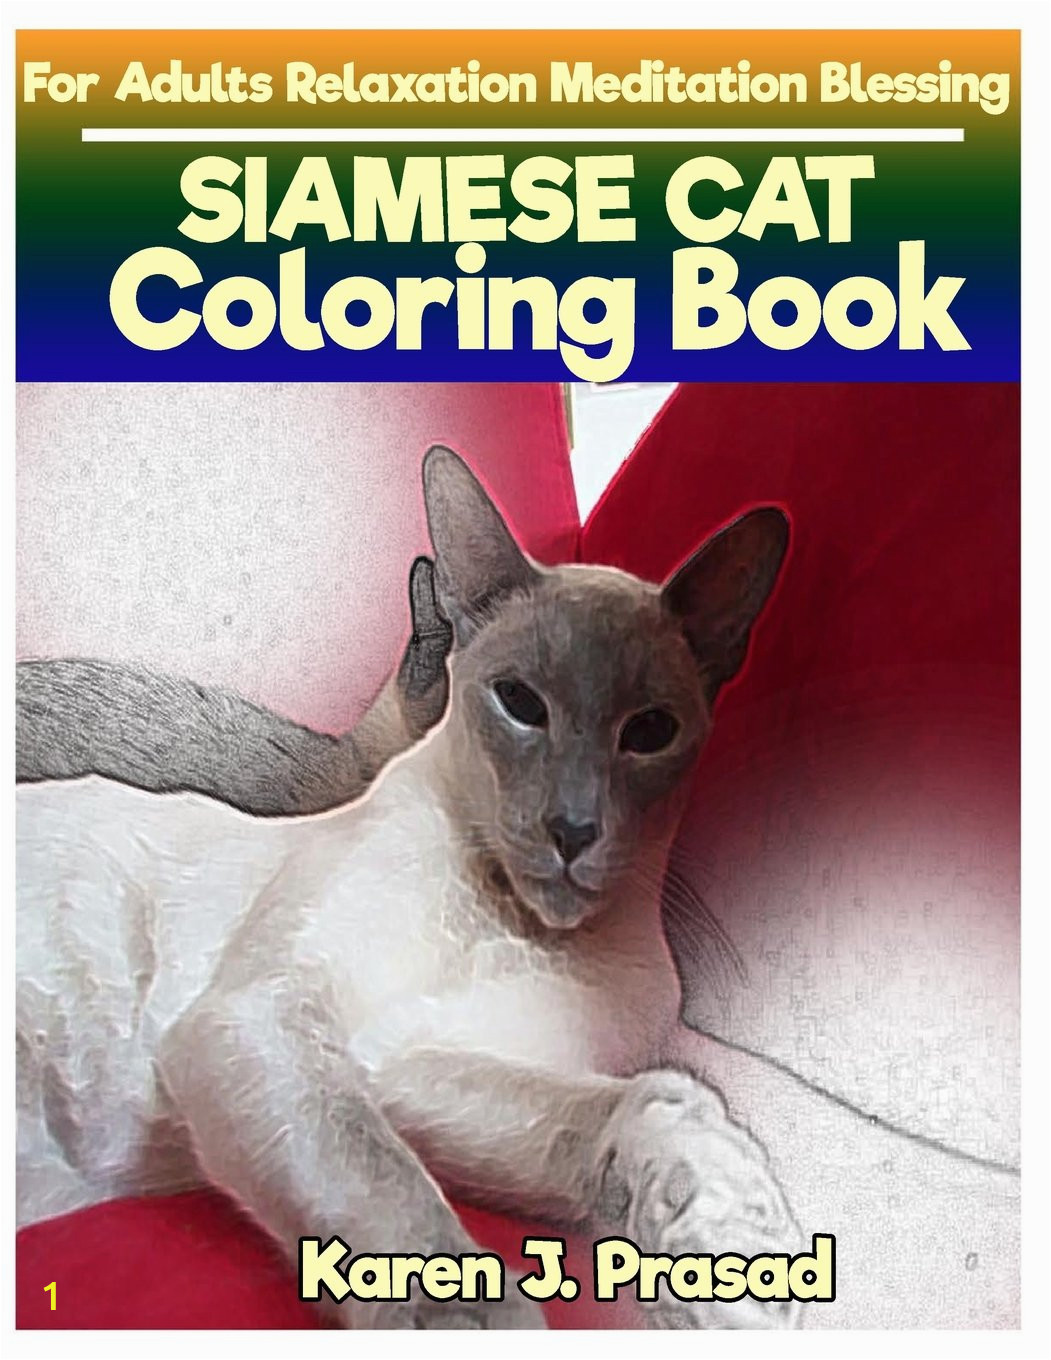 Siamese Cat Coloring Pages Amazon Siamese Cat Coloring Book for Adults Relaxation